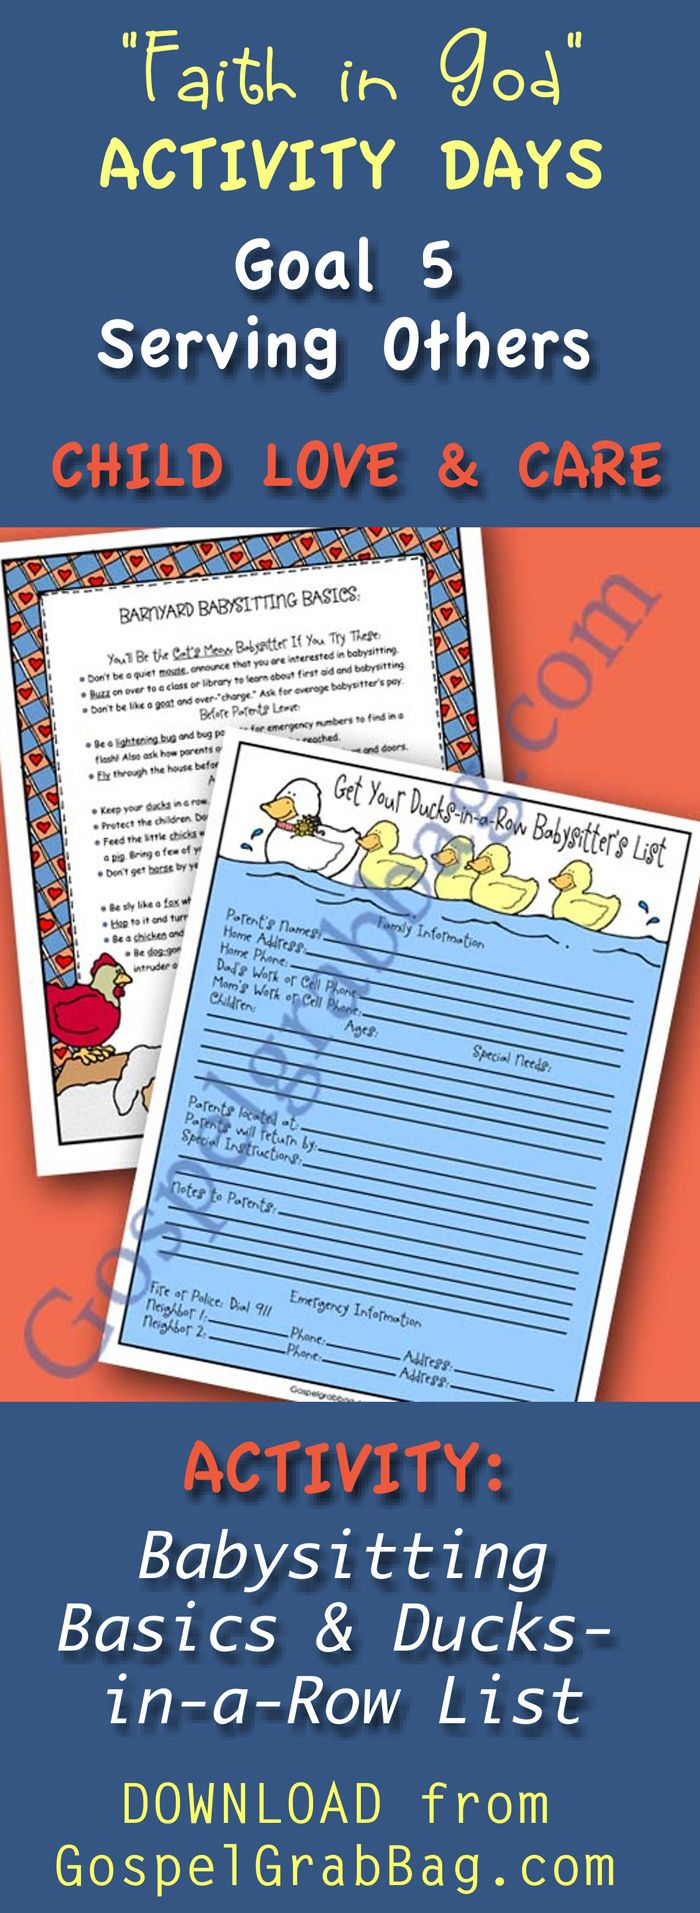 Old McDonald Song and Game, and Babysitting Basics (poster) and Ducks-in-a-Row (emergency list) - Download activity to achieve Activity Days Serving Others Goal 5 - young children with songs or games you have learned or made yourself. Show that you know how to care for and protect a young child. - GospelGrabBag.com